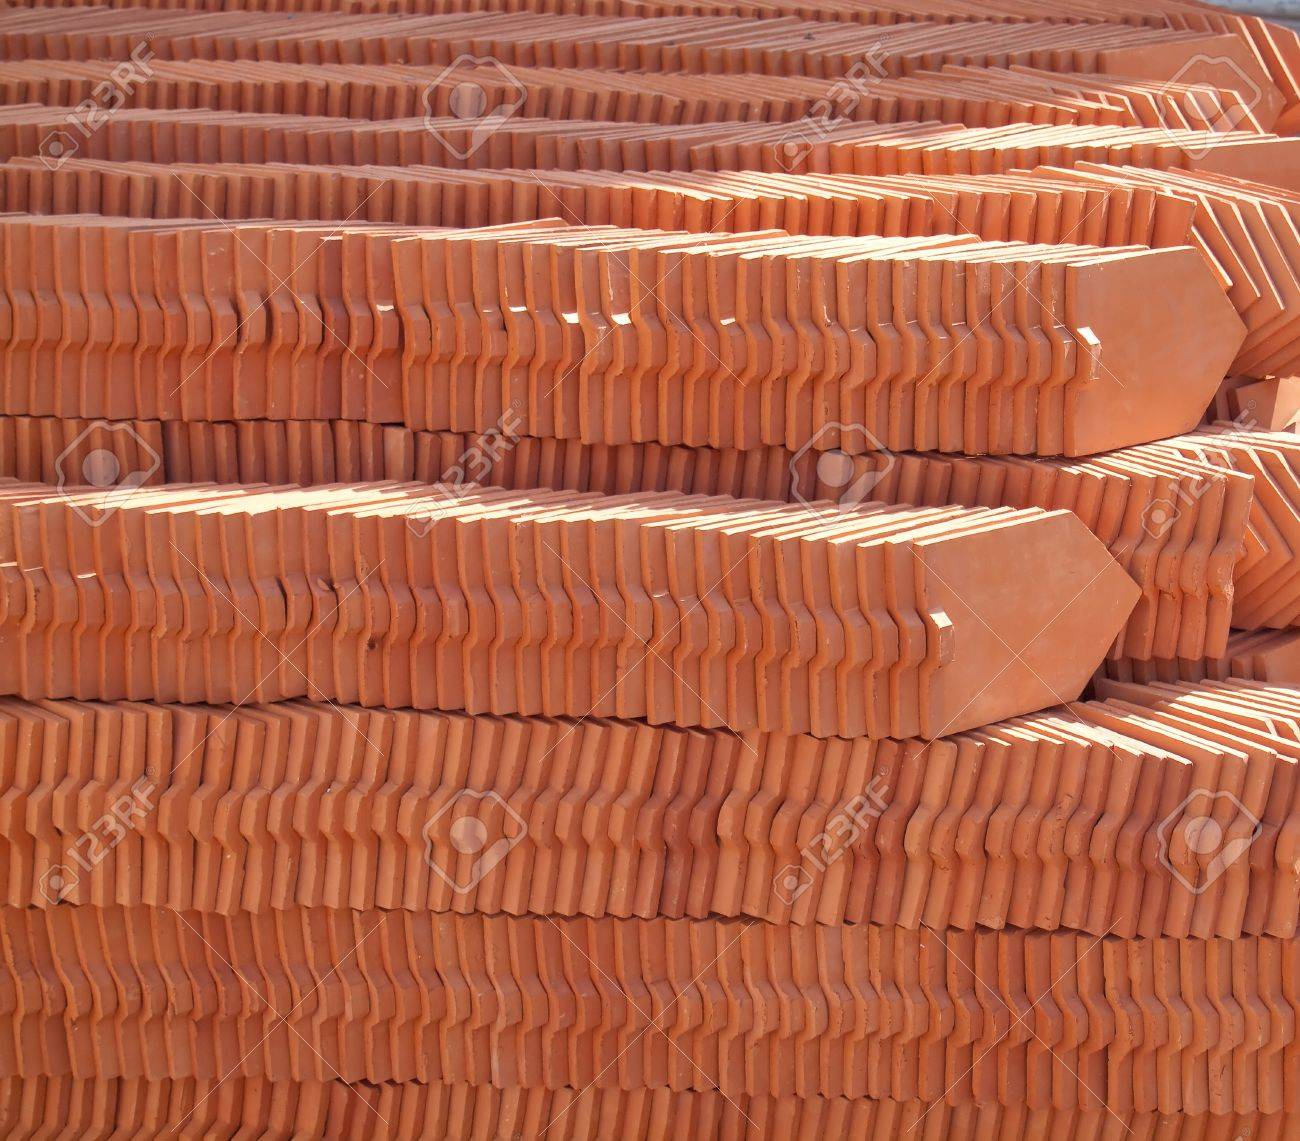 Piles And Stack Of Vintage Ceramic Roof Tiles Stock Photo Picture